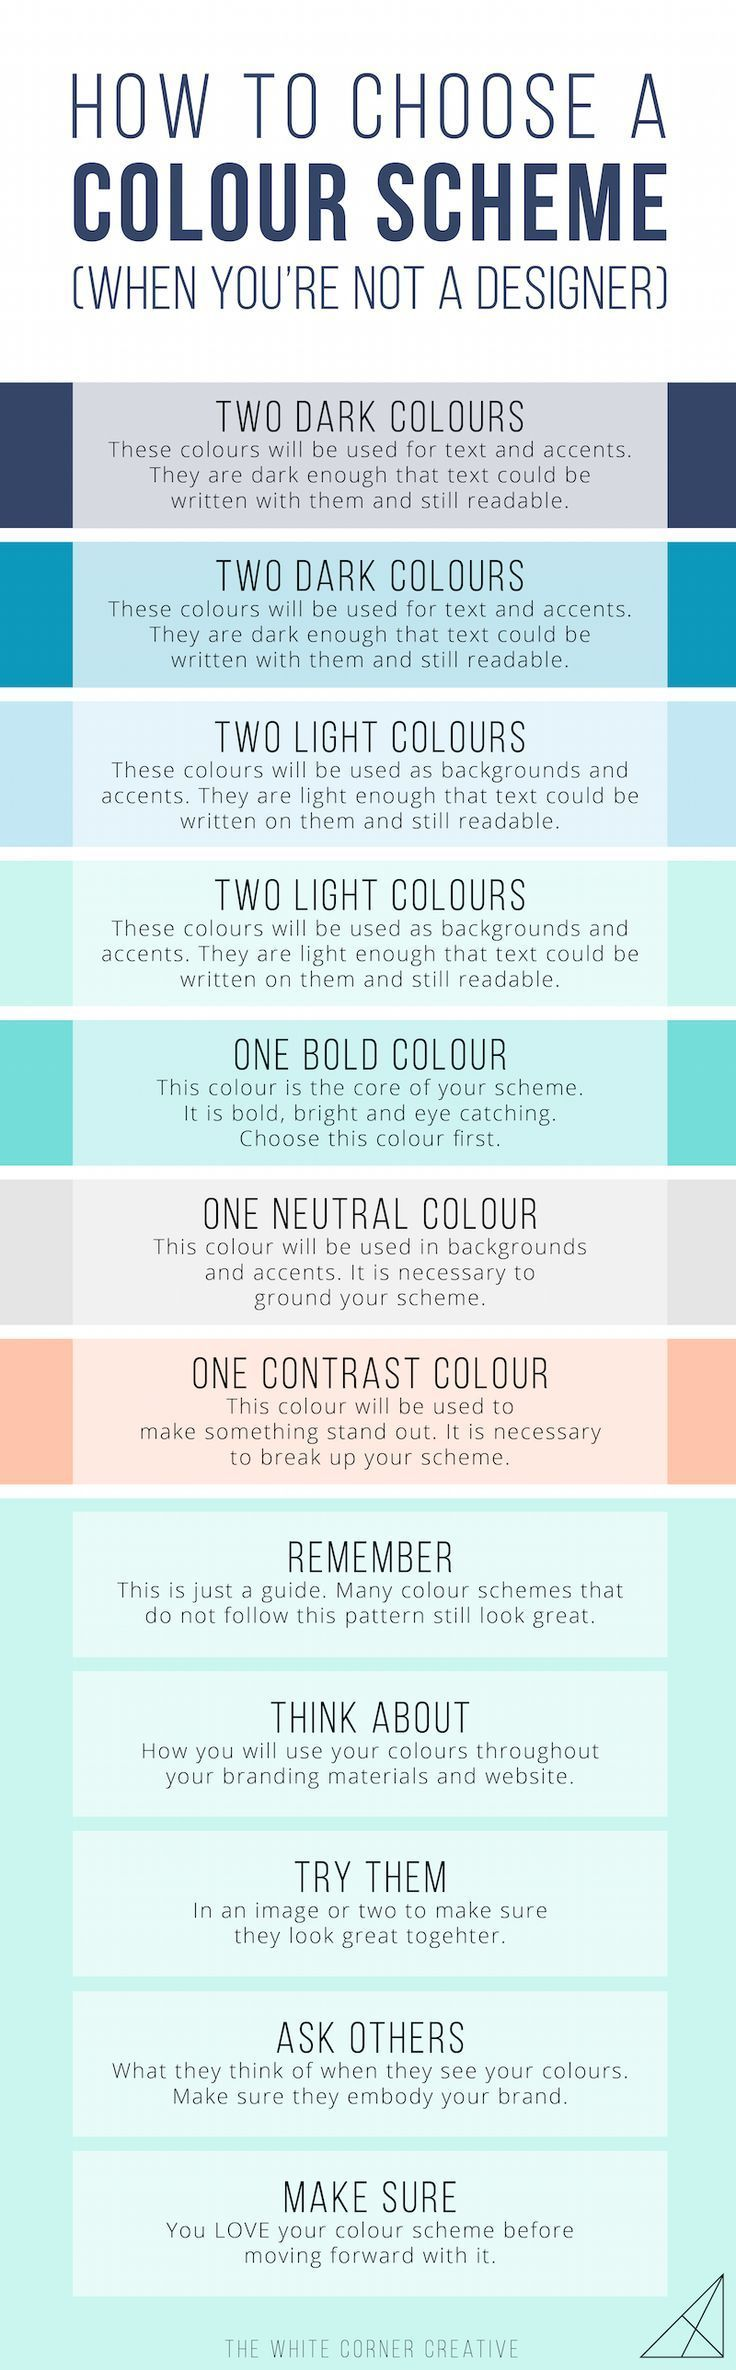 Choosing A Color Scheme For Your Home how to choose a colour scheme (when you're not a designer